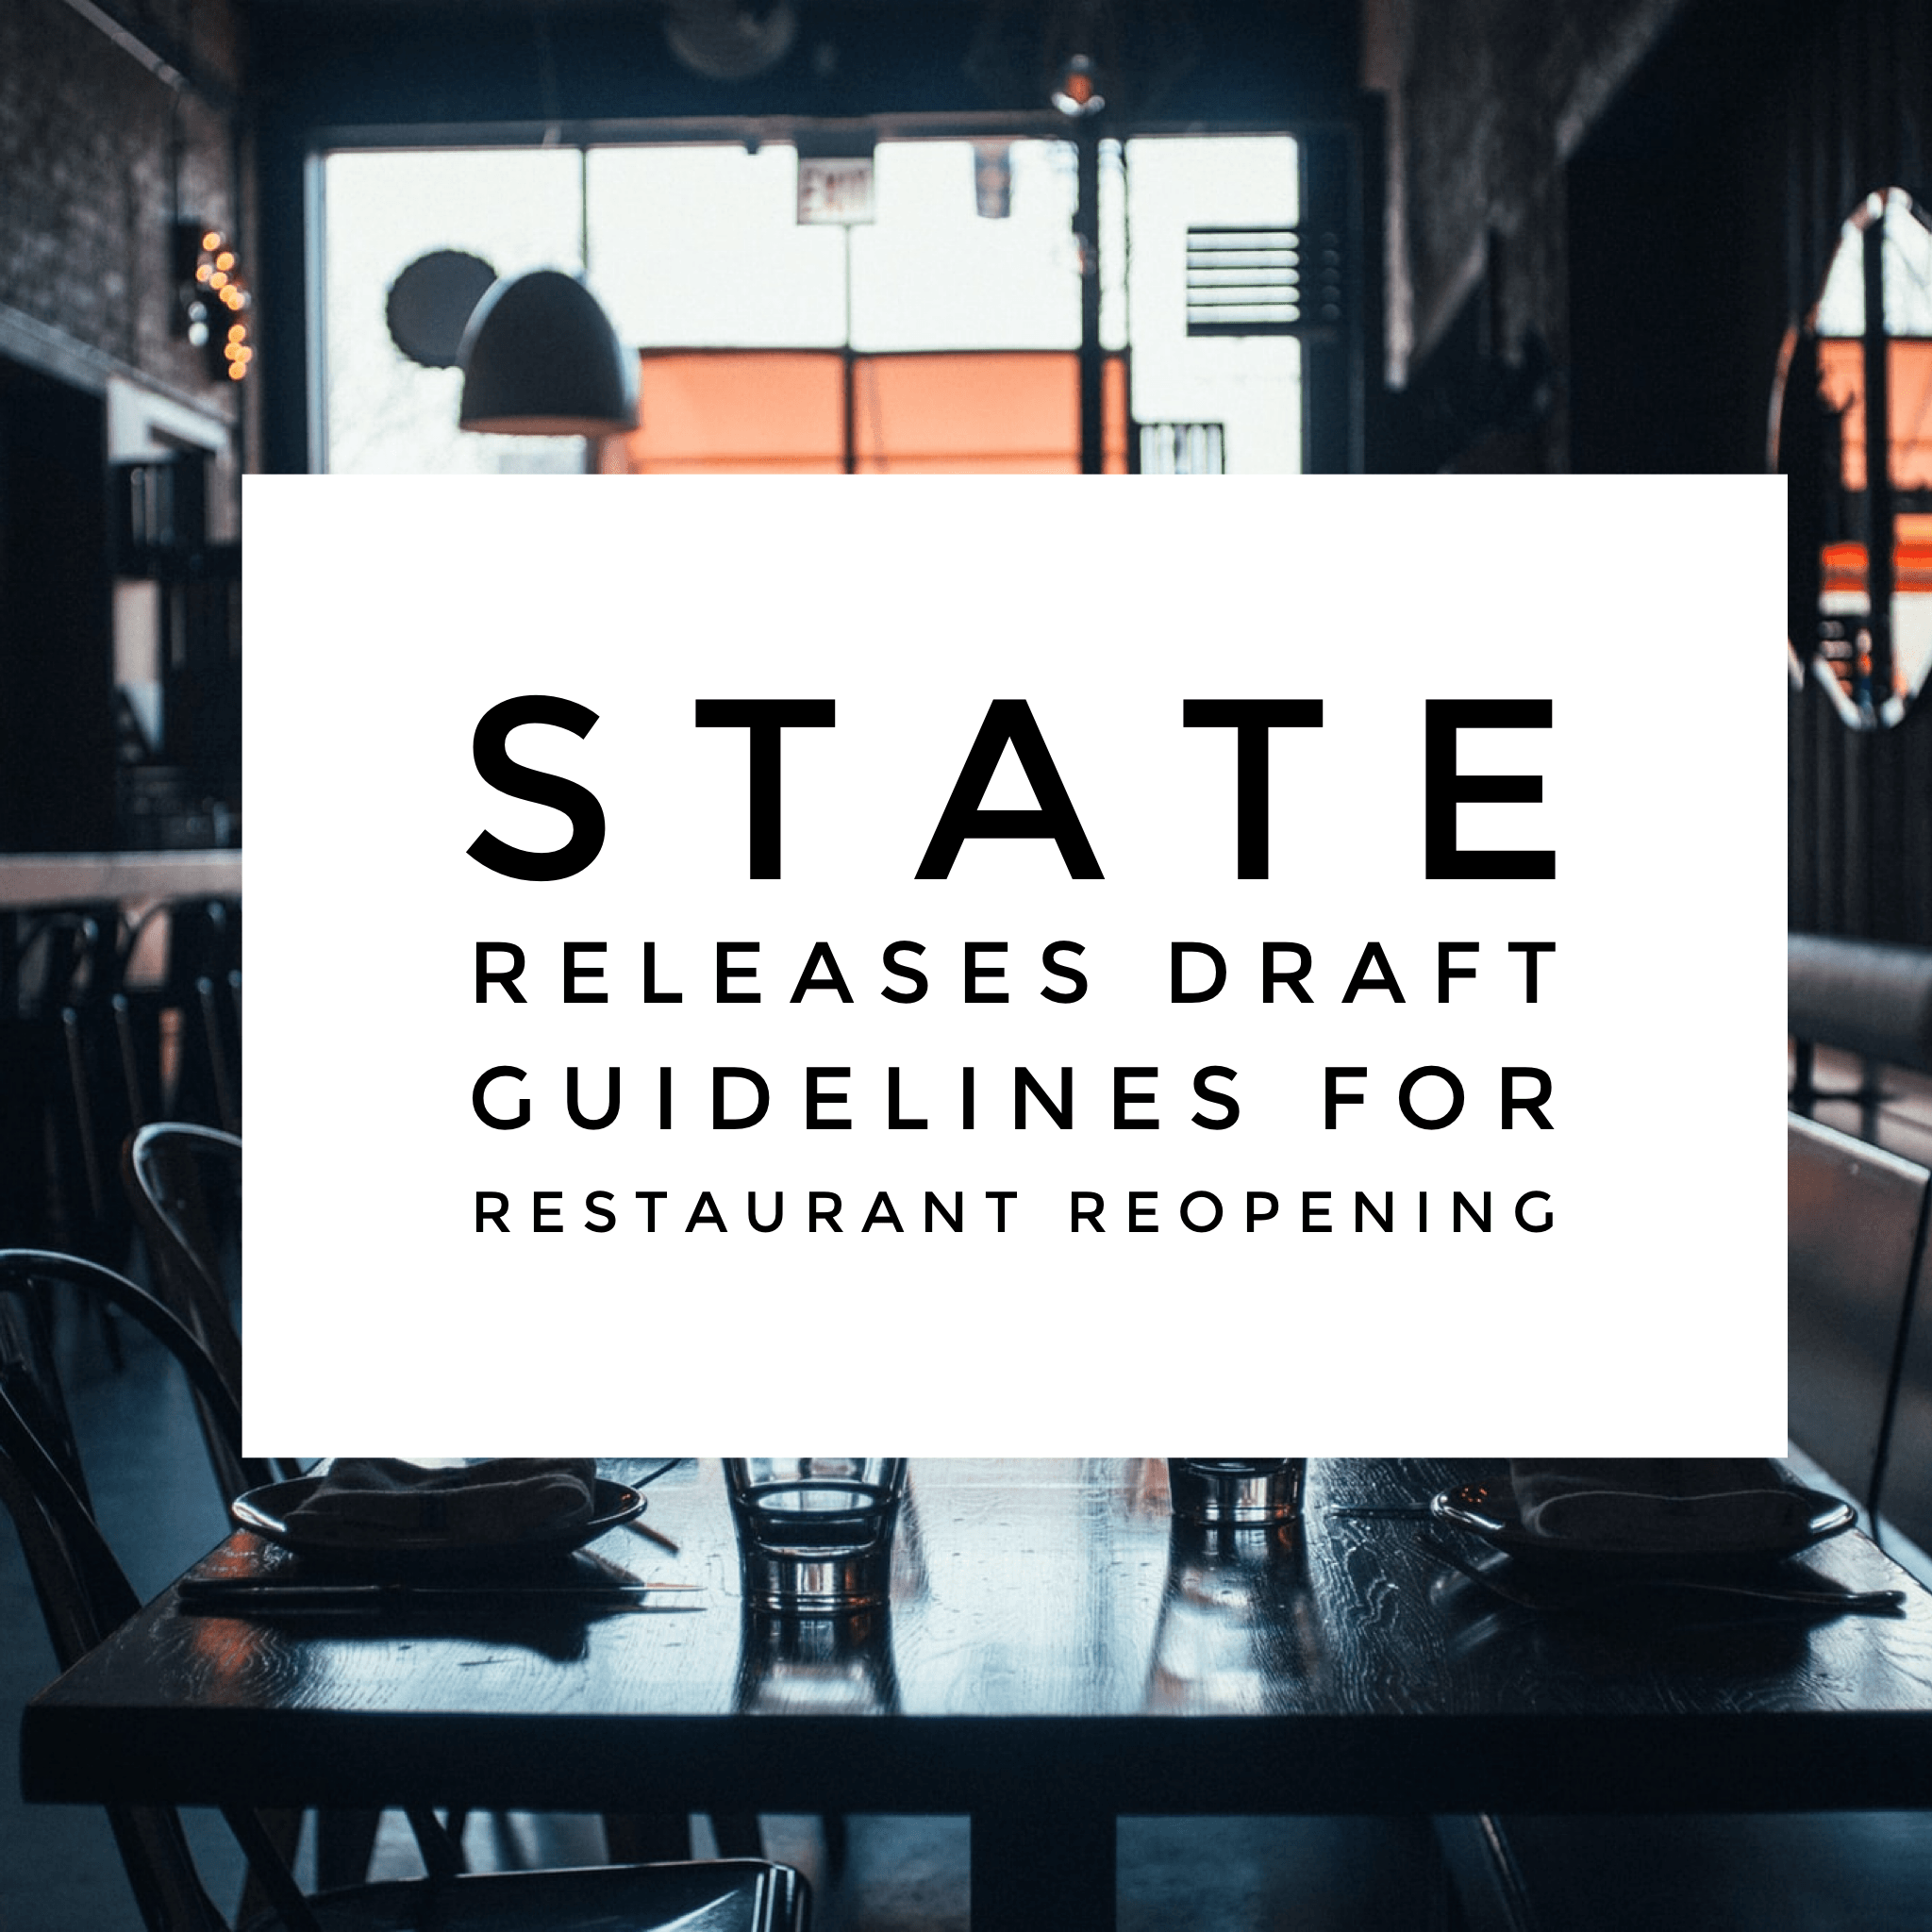 State releases draft guidelines for restaurant reopening